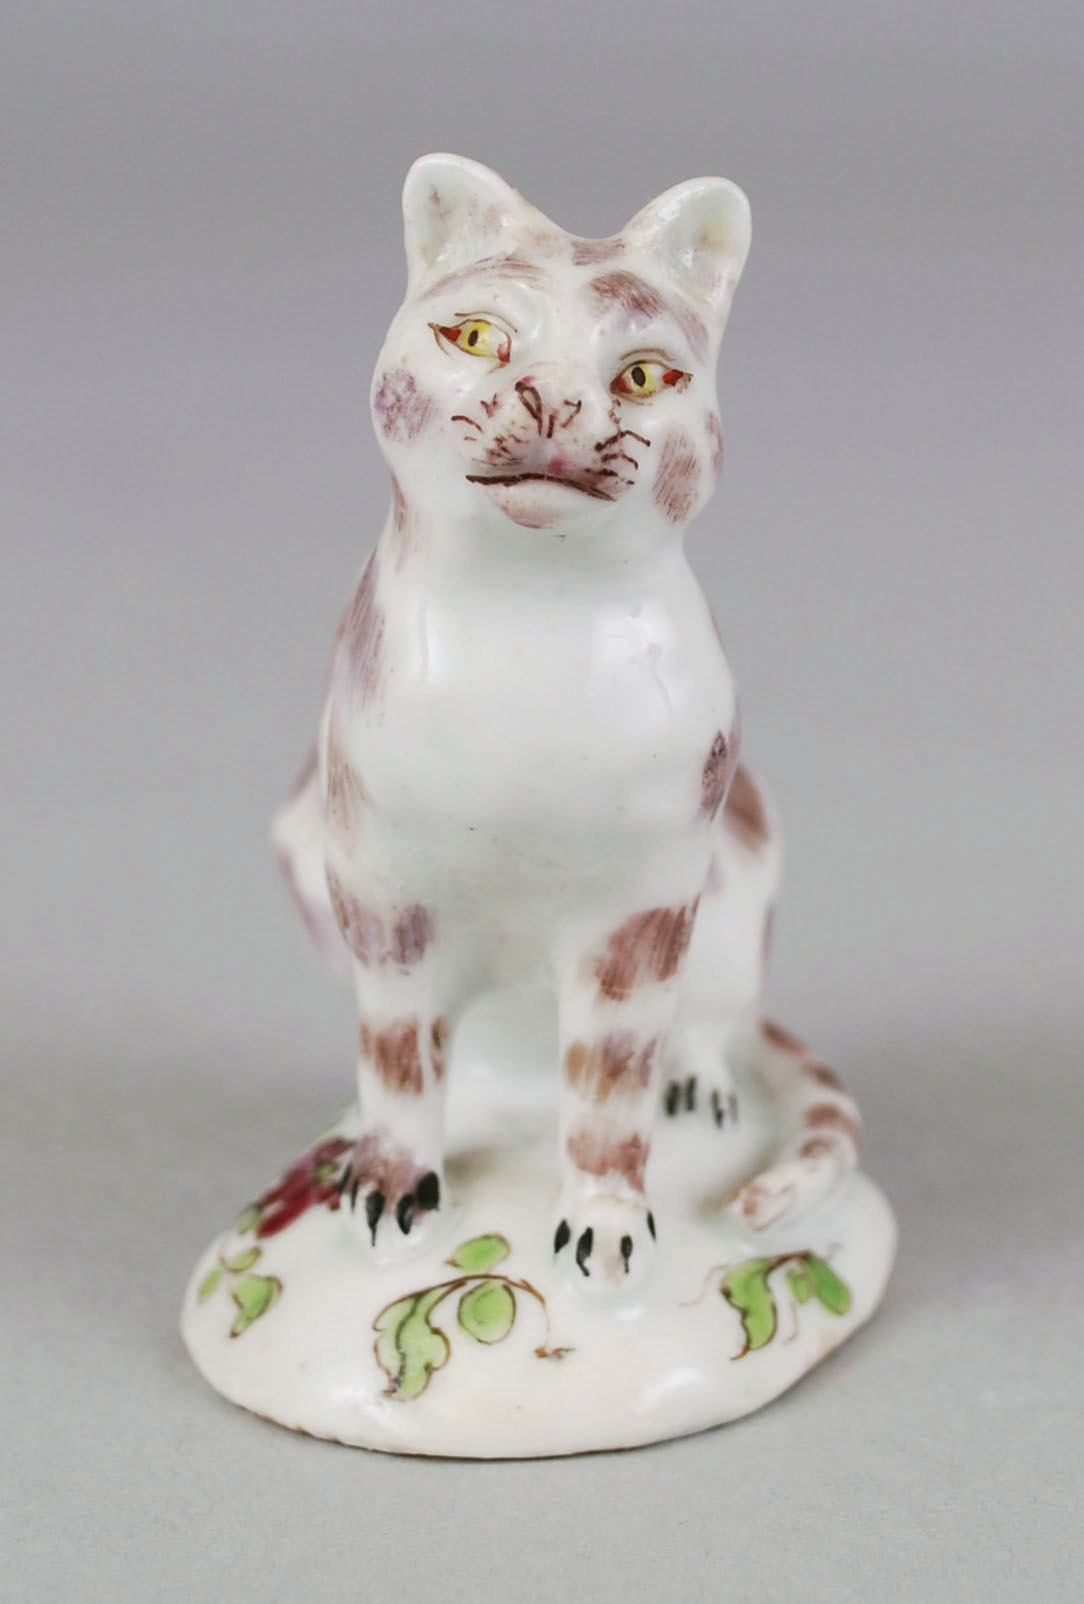 Small seated Bow porcelain cat of white color with brown patches. The eyes are painted yellow and paws have black lines for nails. The tail curves around next to the right of the feet. The cat sits on a circular base with painted flowers and green vines.